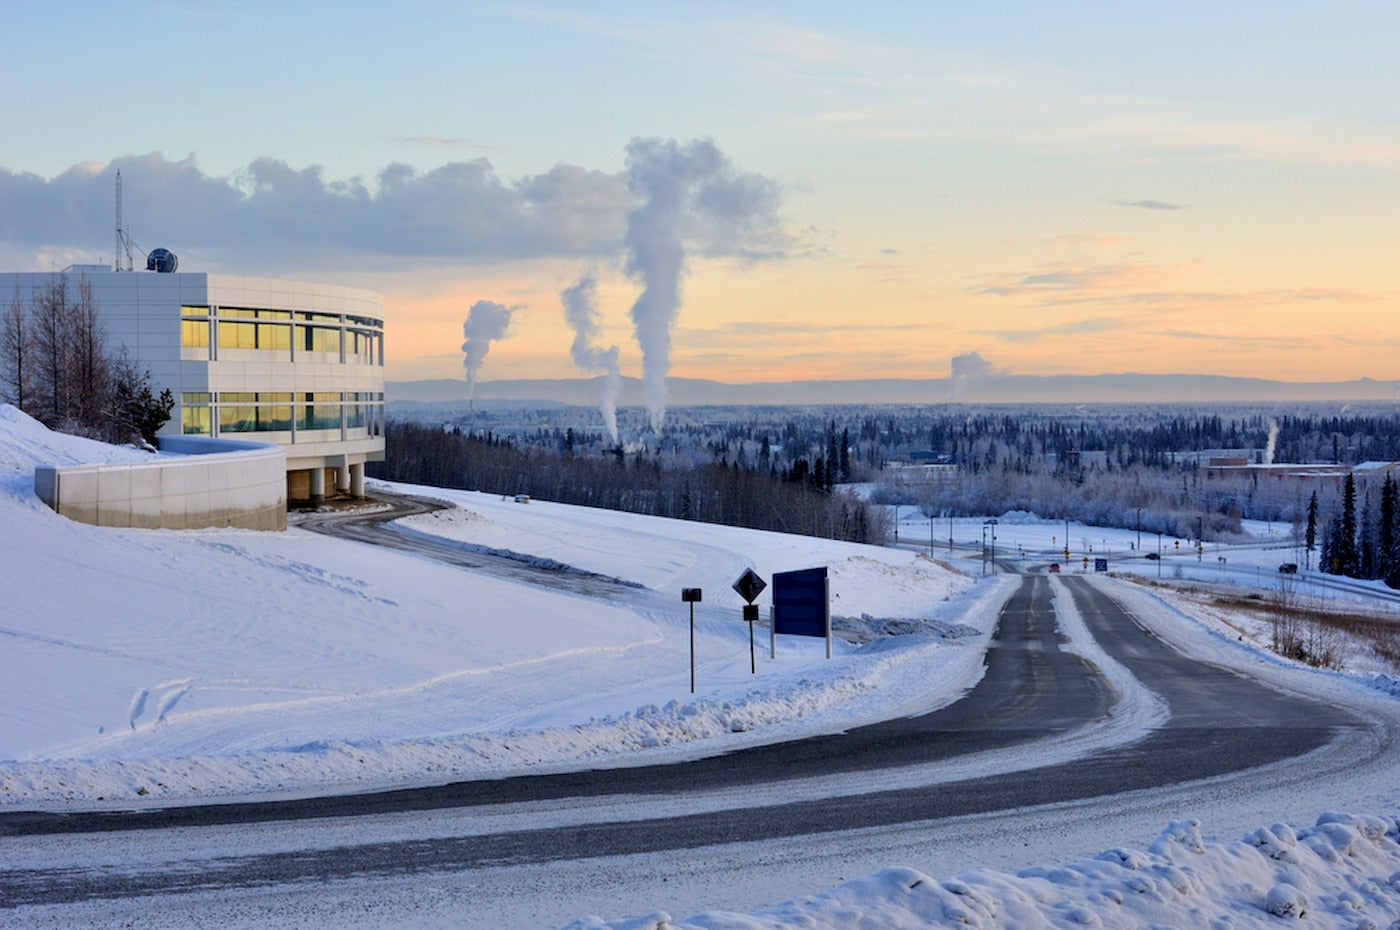 Snow covered landscape of University of Fairbanks at sunset.